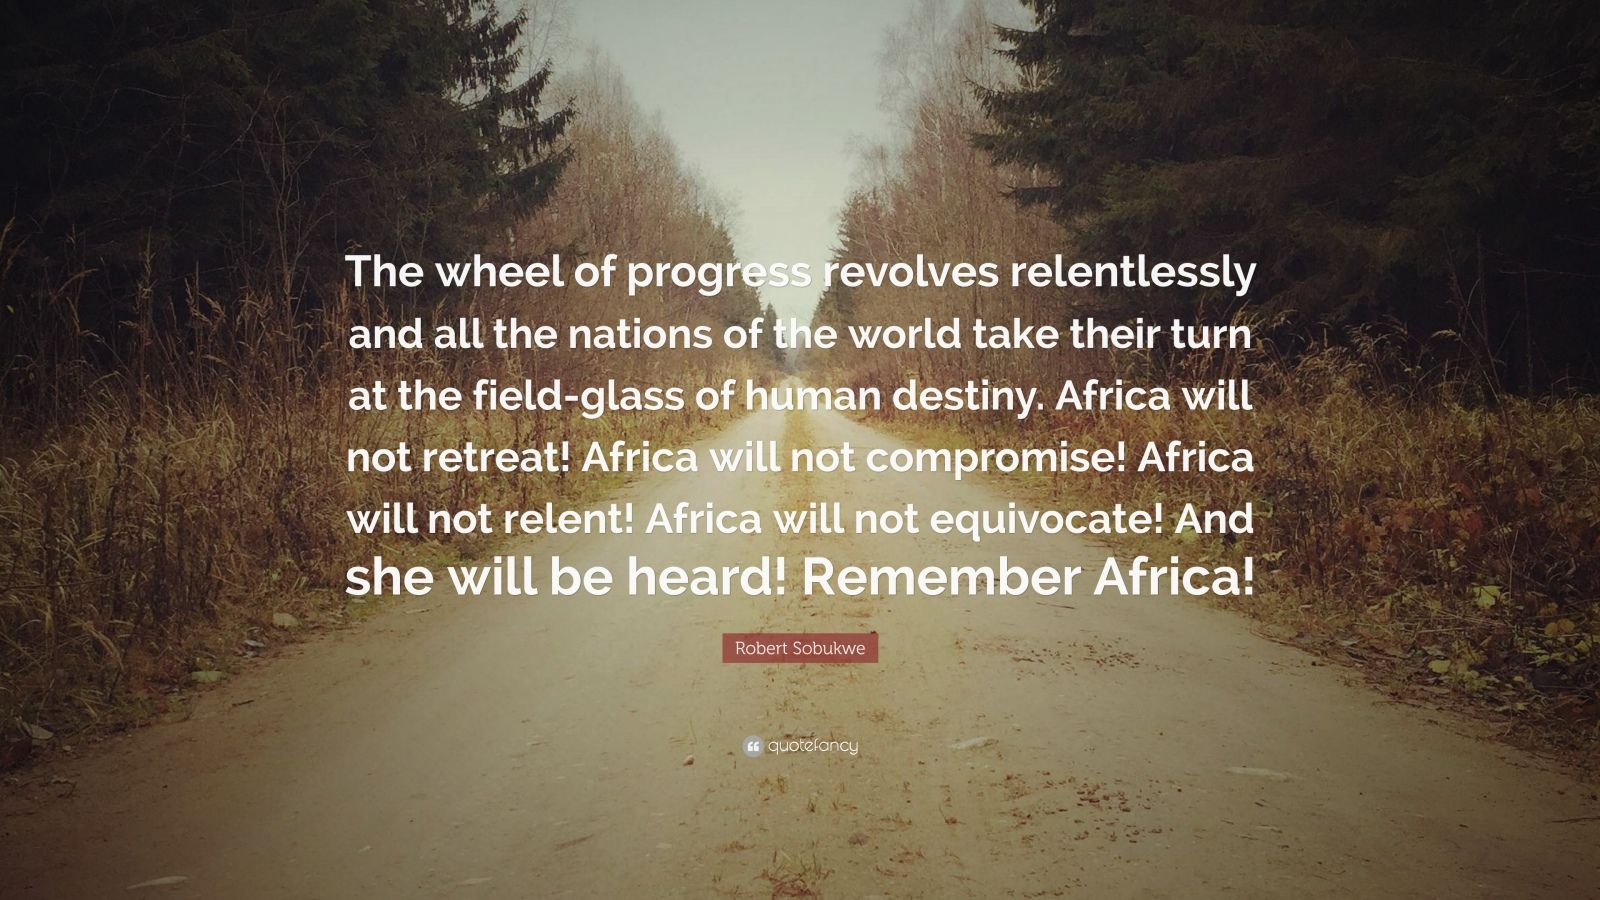 """Robert Sobukwe Quote: """"The wheel of progress revolves relentlessly and all the nations of the world take their turn at the field-glass of human destiny. Africa will not retreat! Africa will not compromise! Africa will not relent! Africa will not equivocate! And she will be heard! Remember Africa!"""""""